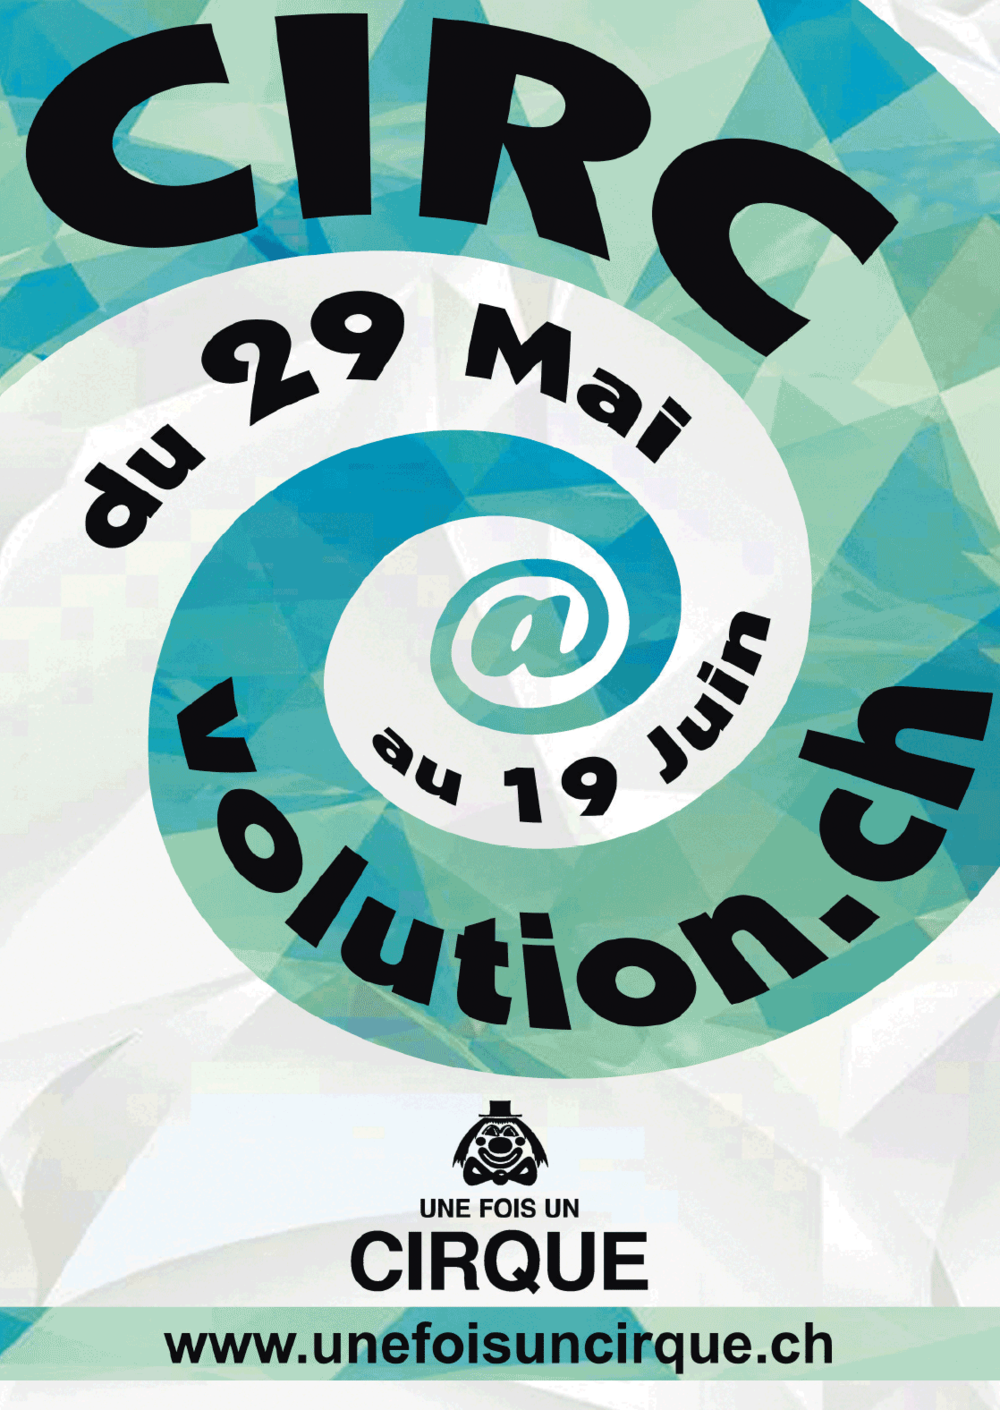 2015_circ@volution.ch_flyer-1.png